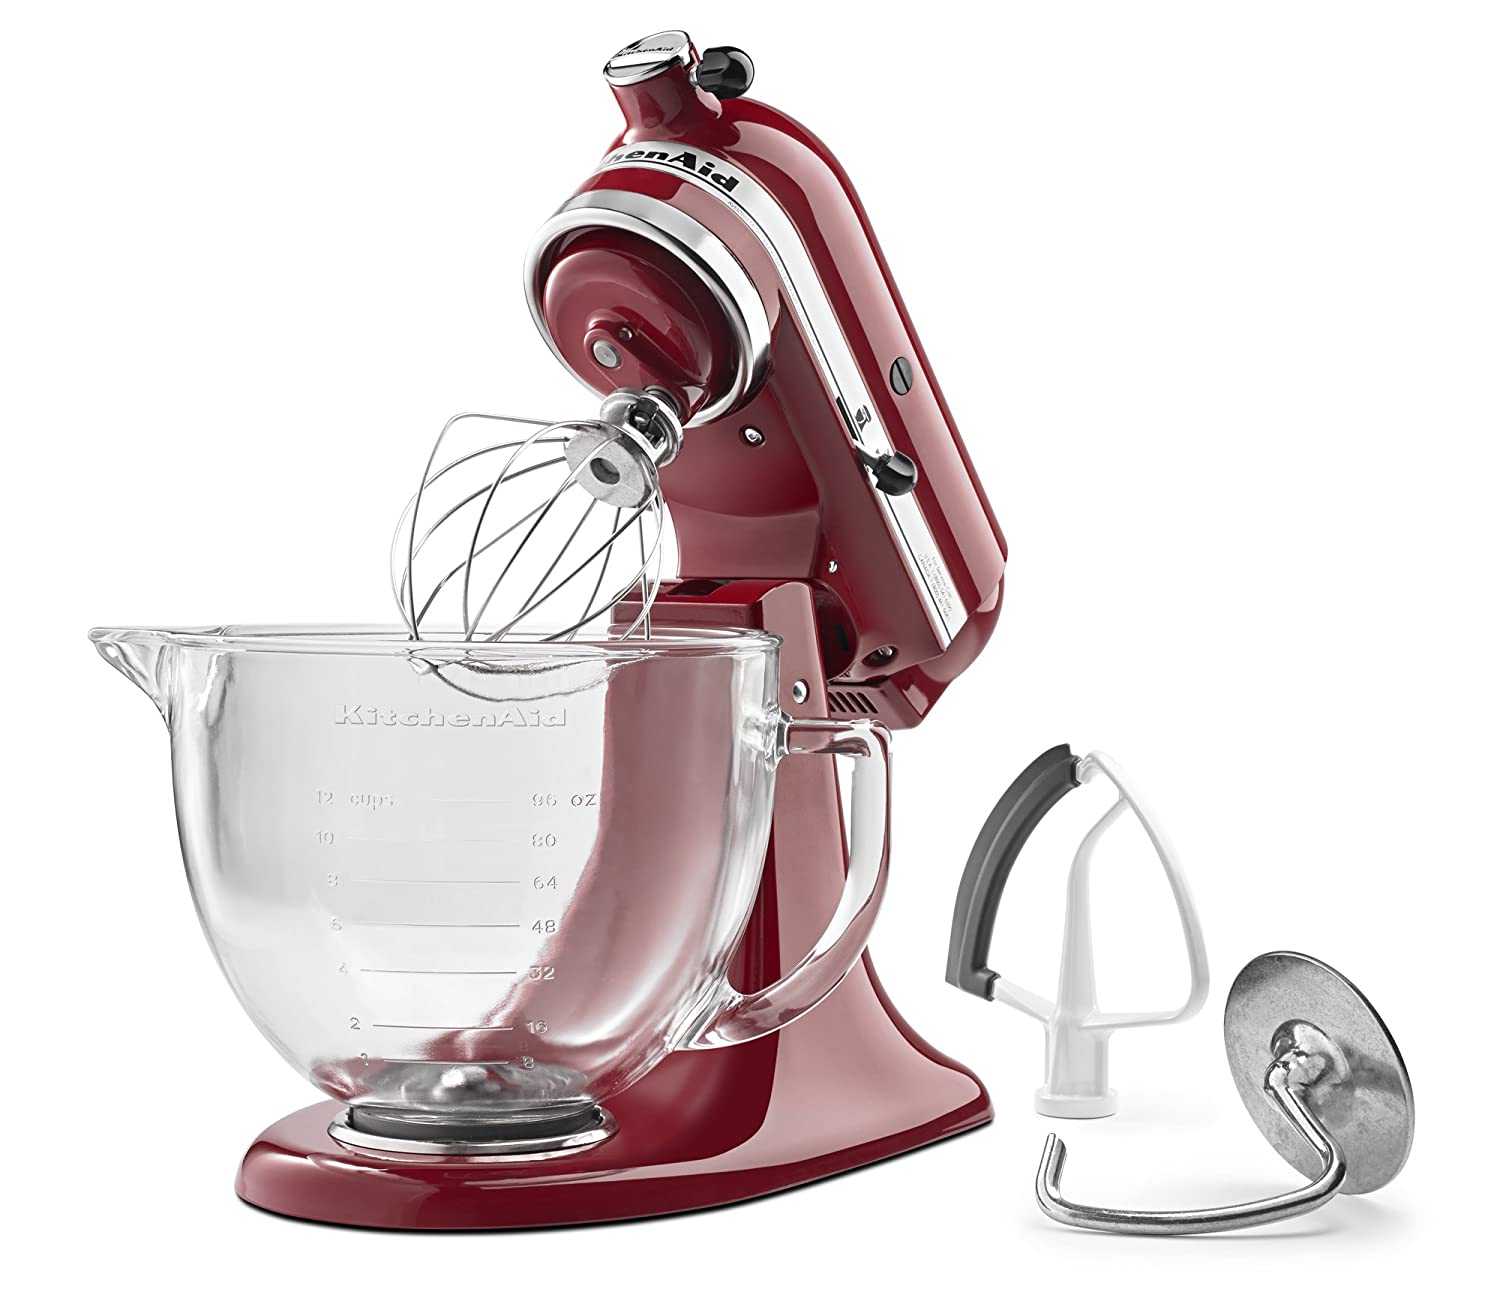 kitchenaid artisan design series 5 qt stand mixer kitchenaid artisan design  5 quart stand mixer antique